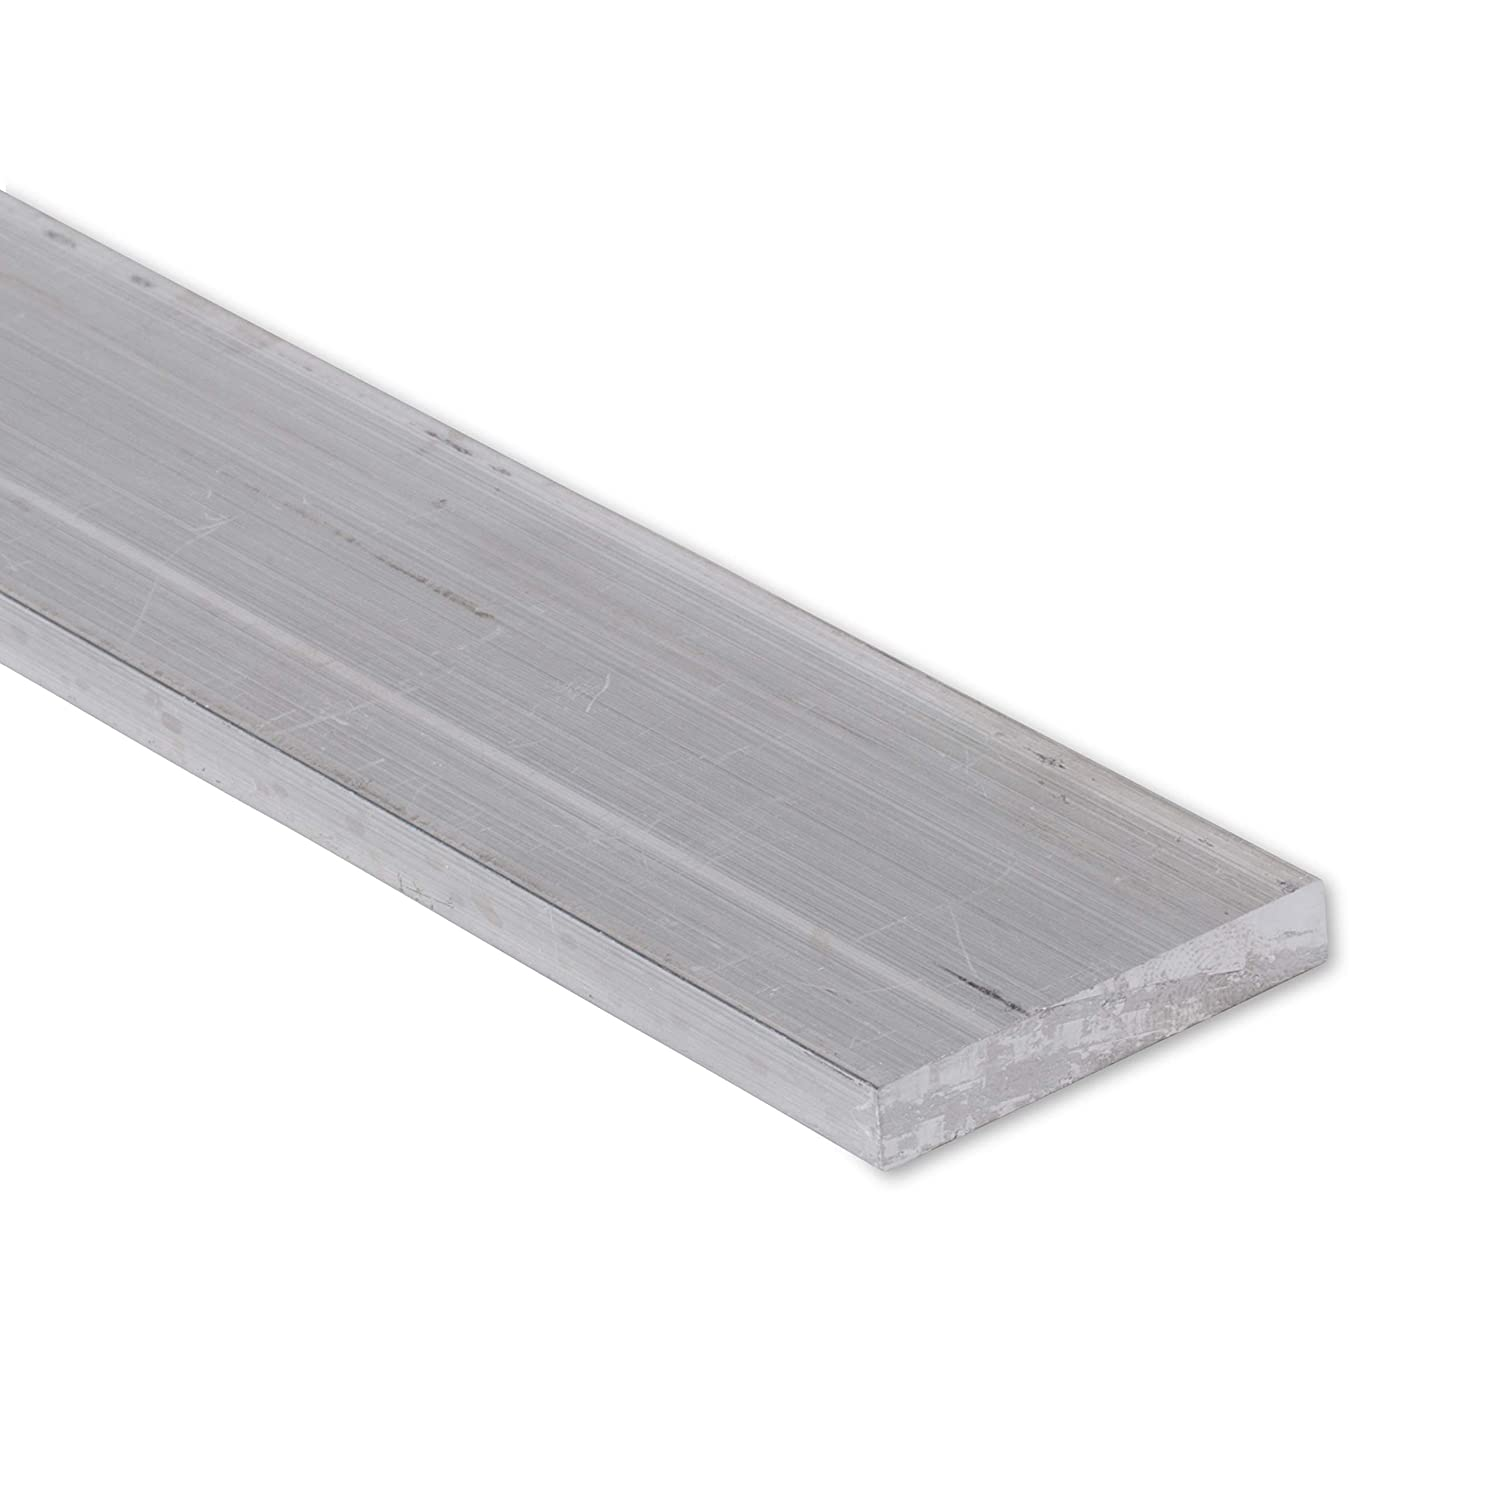 "T6511 Mill Stock 1/"" 1/"" x 1/"" Aluminum Flat Bar 24/"" Length 6061 Square"